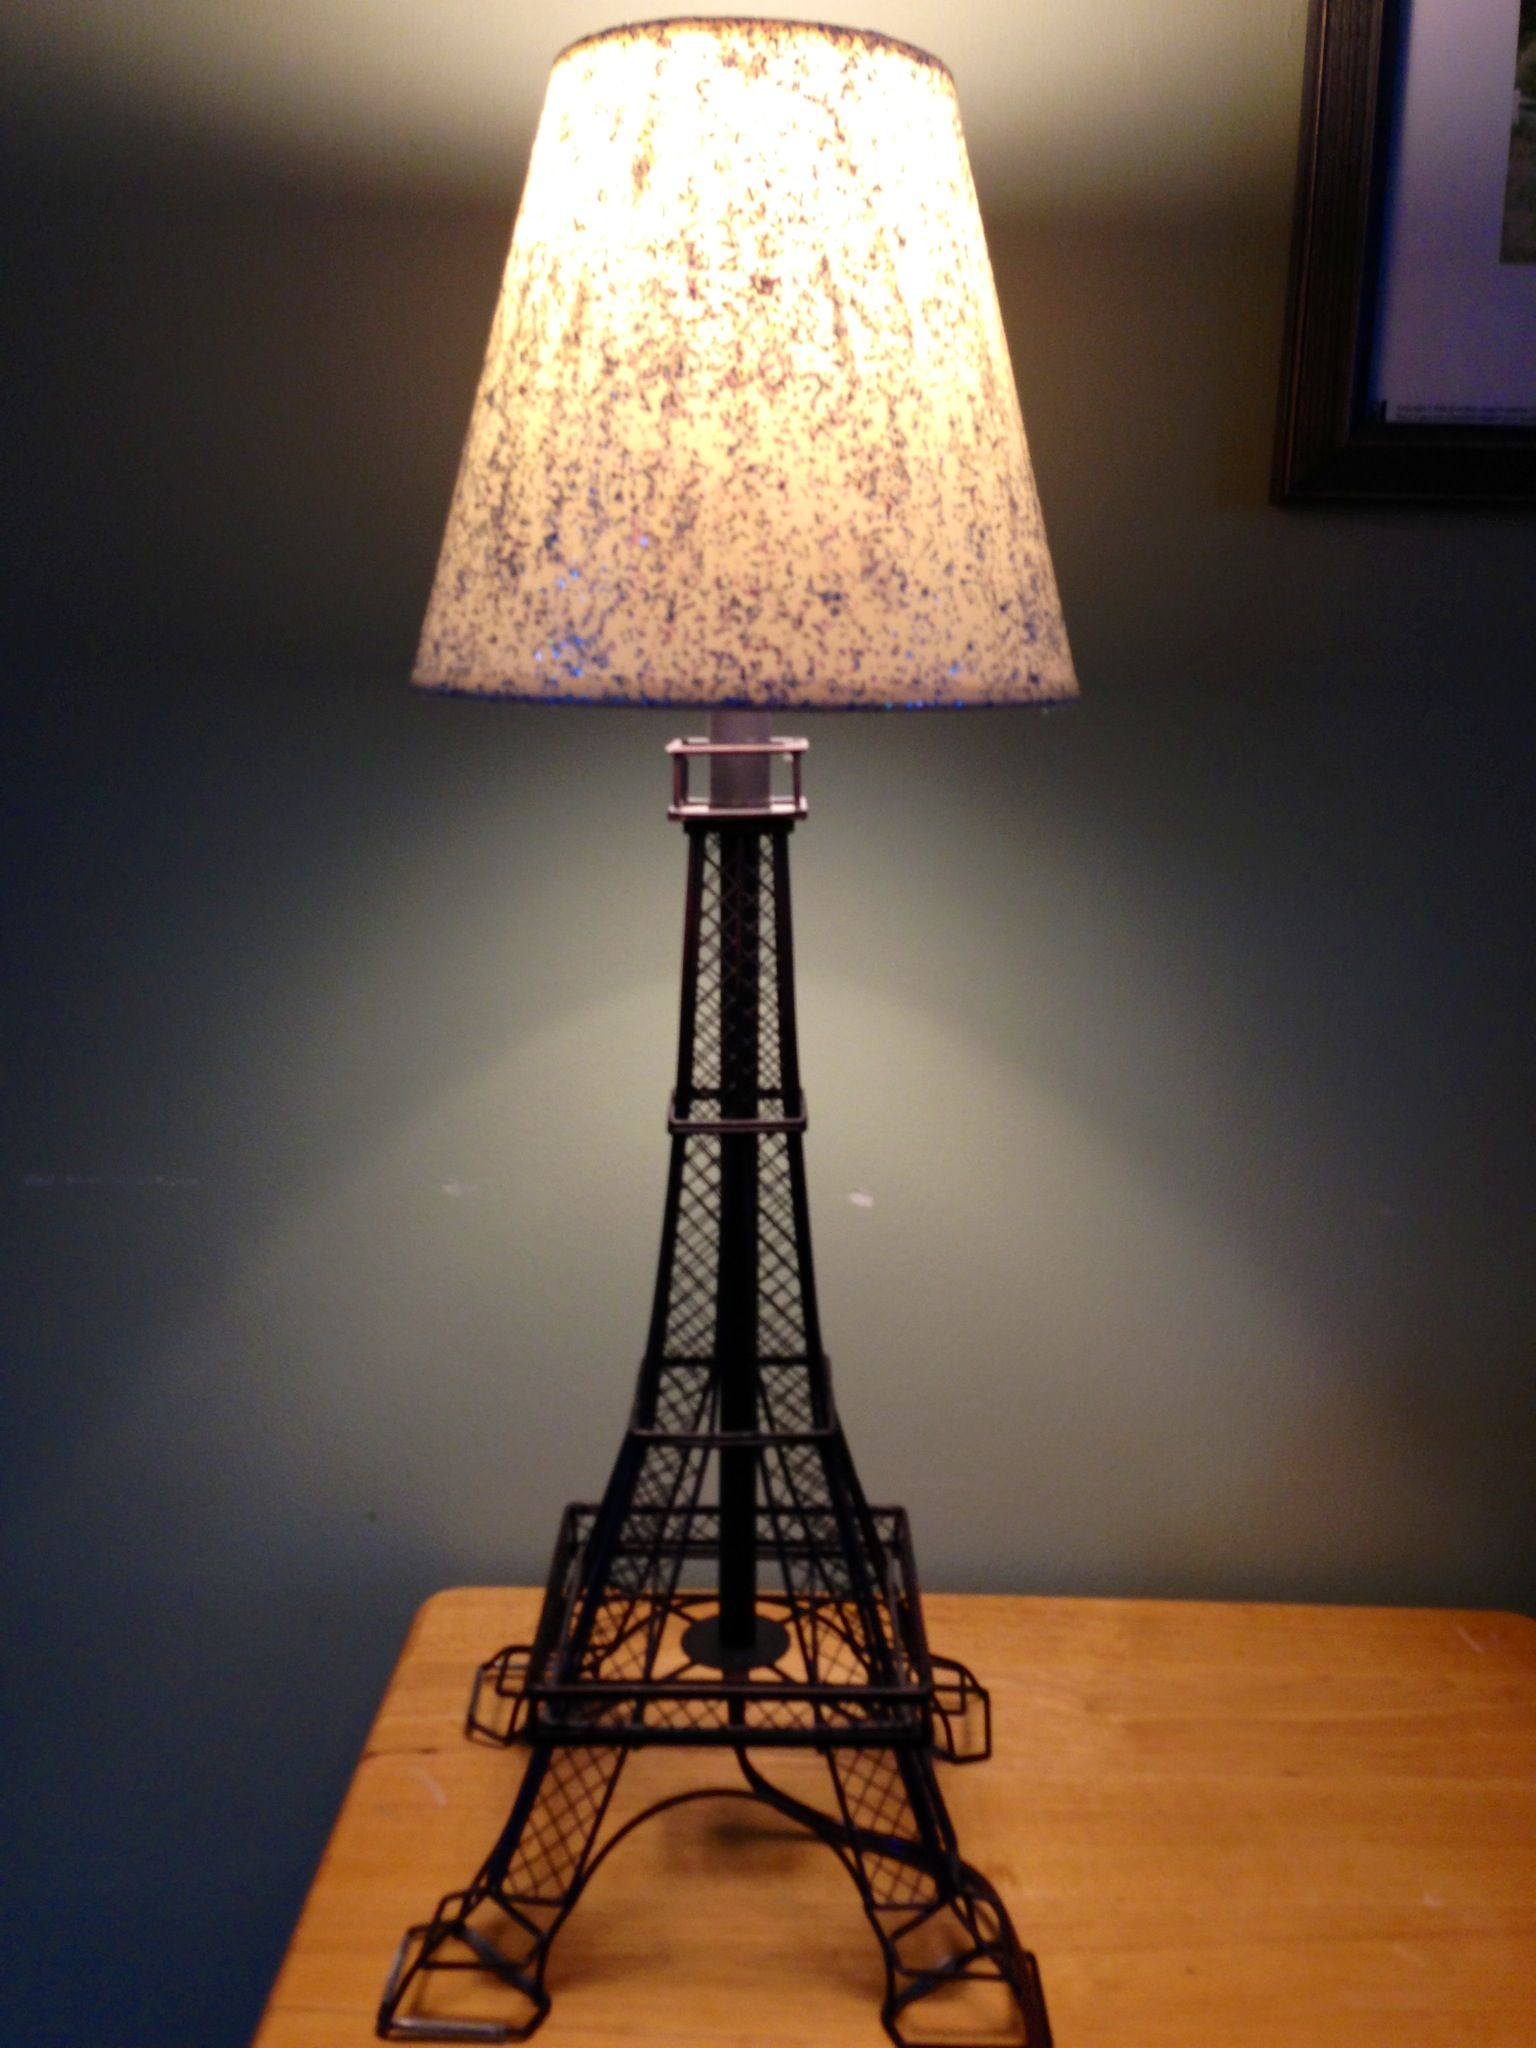 Mod podge and glitter lamp shade! #diy | Home Sweet Home ...